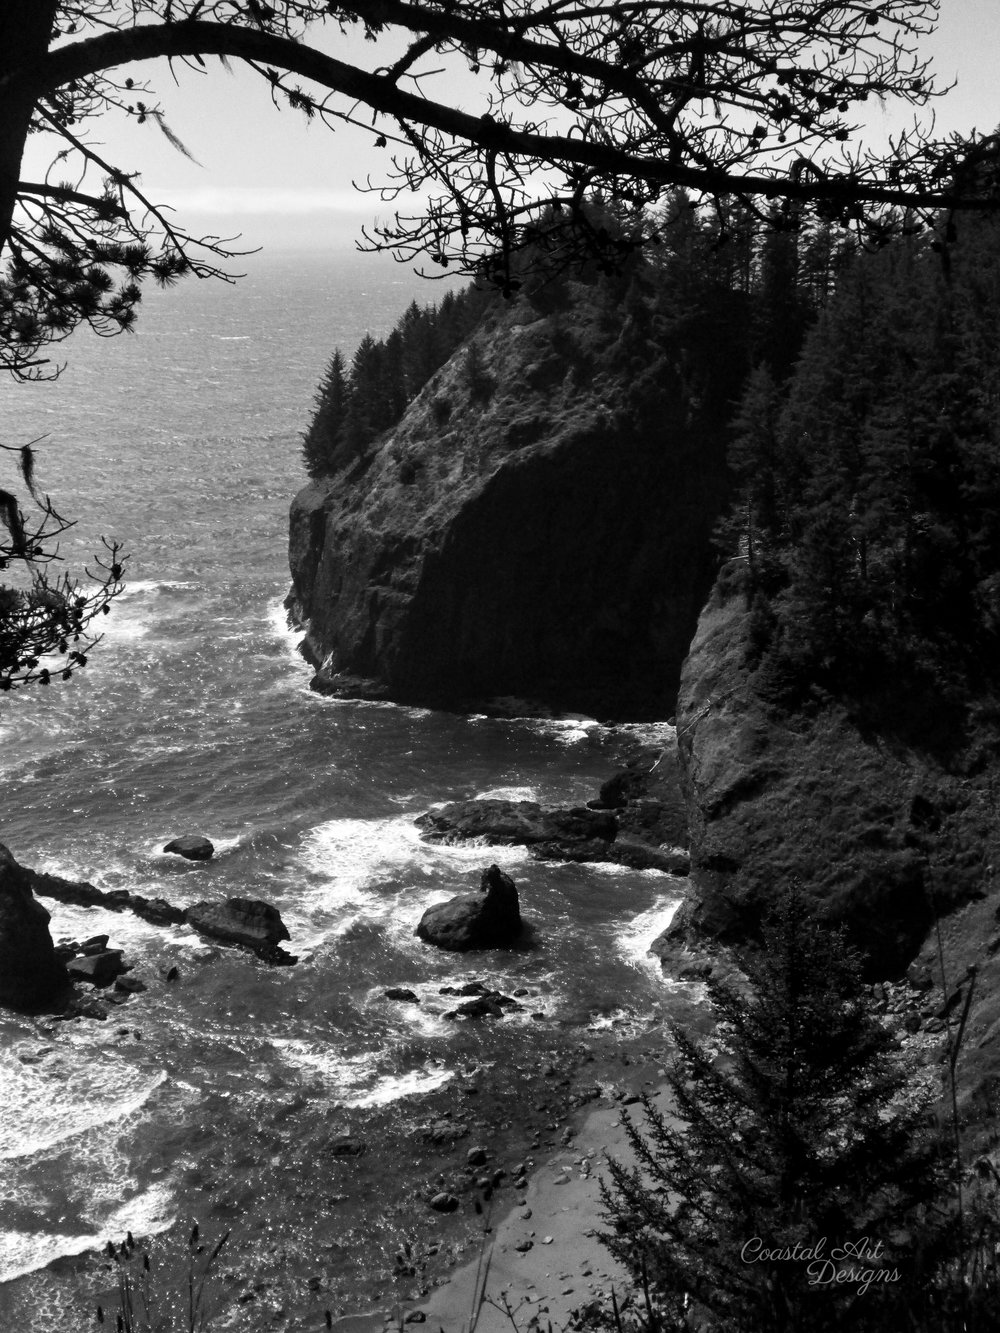 cliff-rock-formation-black-and-white-photos.jpg